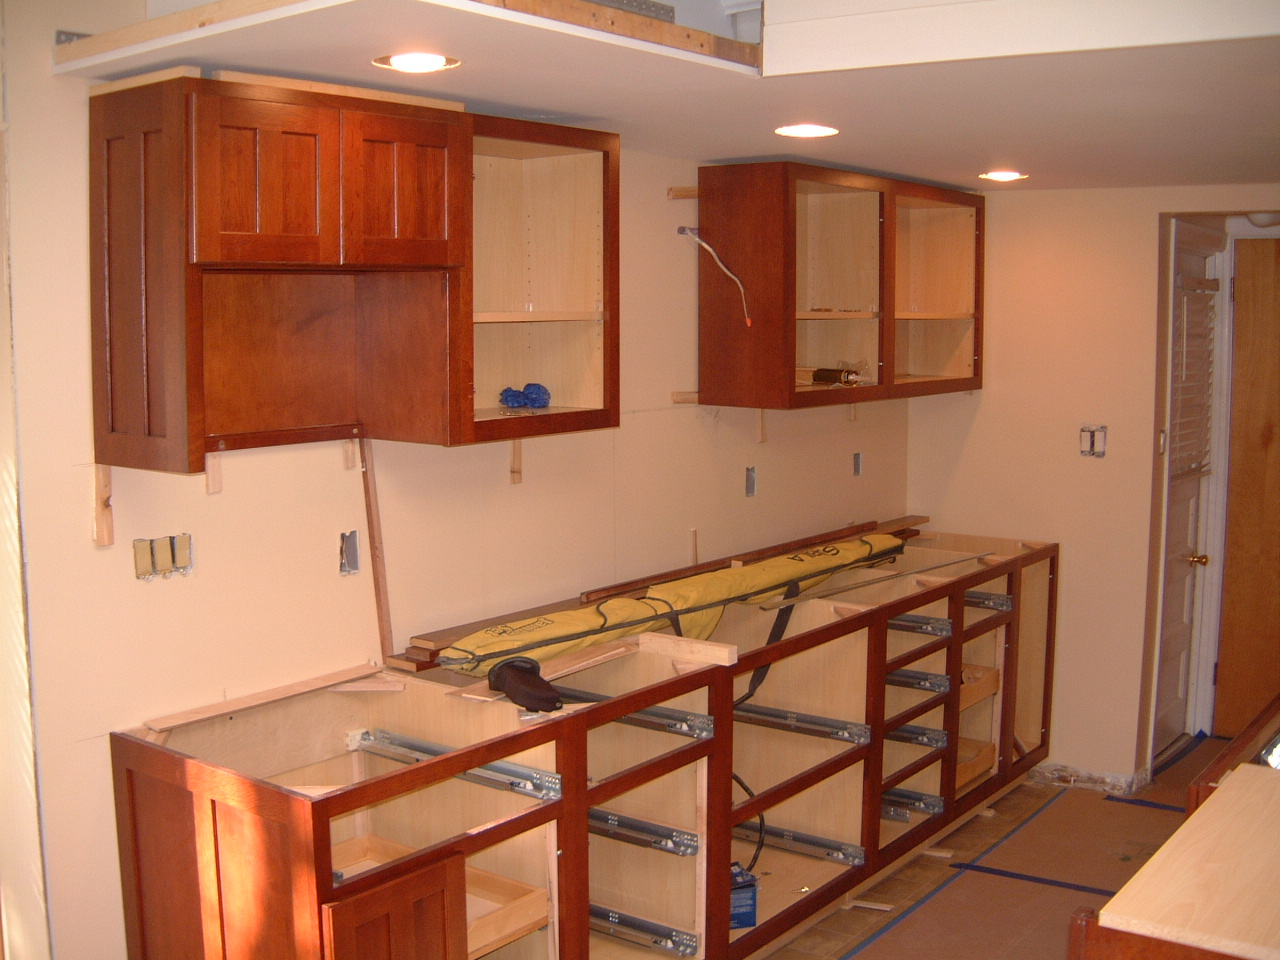 Installing Kitchen Cabinets Kitchen Cabinet Installers